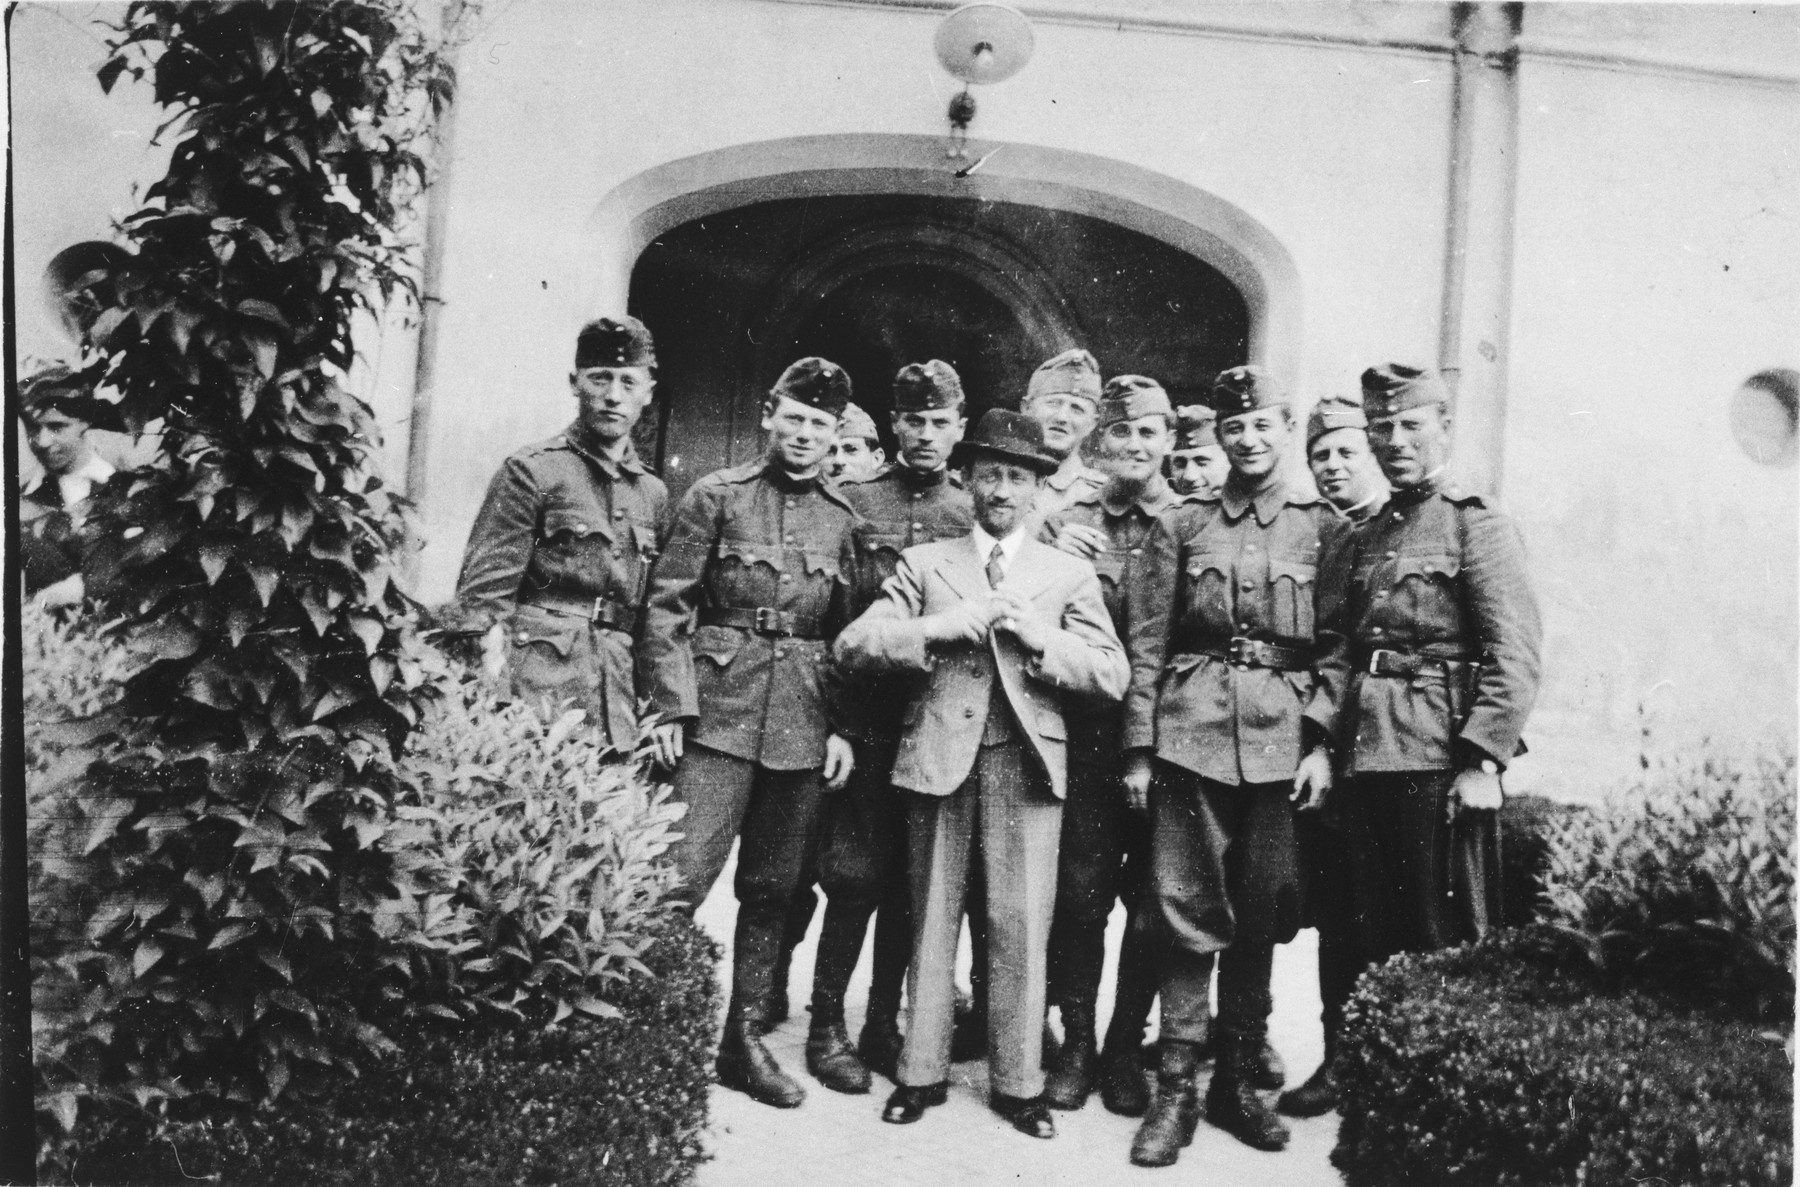 Former Jewish soldiers in a Hungarian forced labor battalion pose with the town's cantor outside the synagogue in Koszeg.  Jeno Lebowiz is fourth from the right.  Also pictured are Greenstein (second from the left), Hecht (fourth from the left) and Klein (fifth from the right).